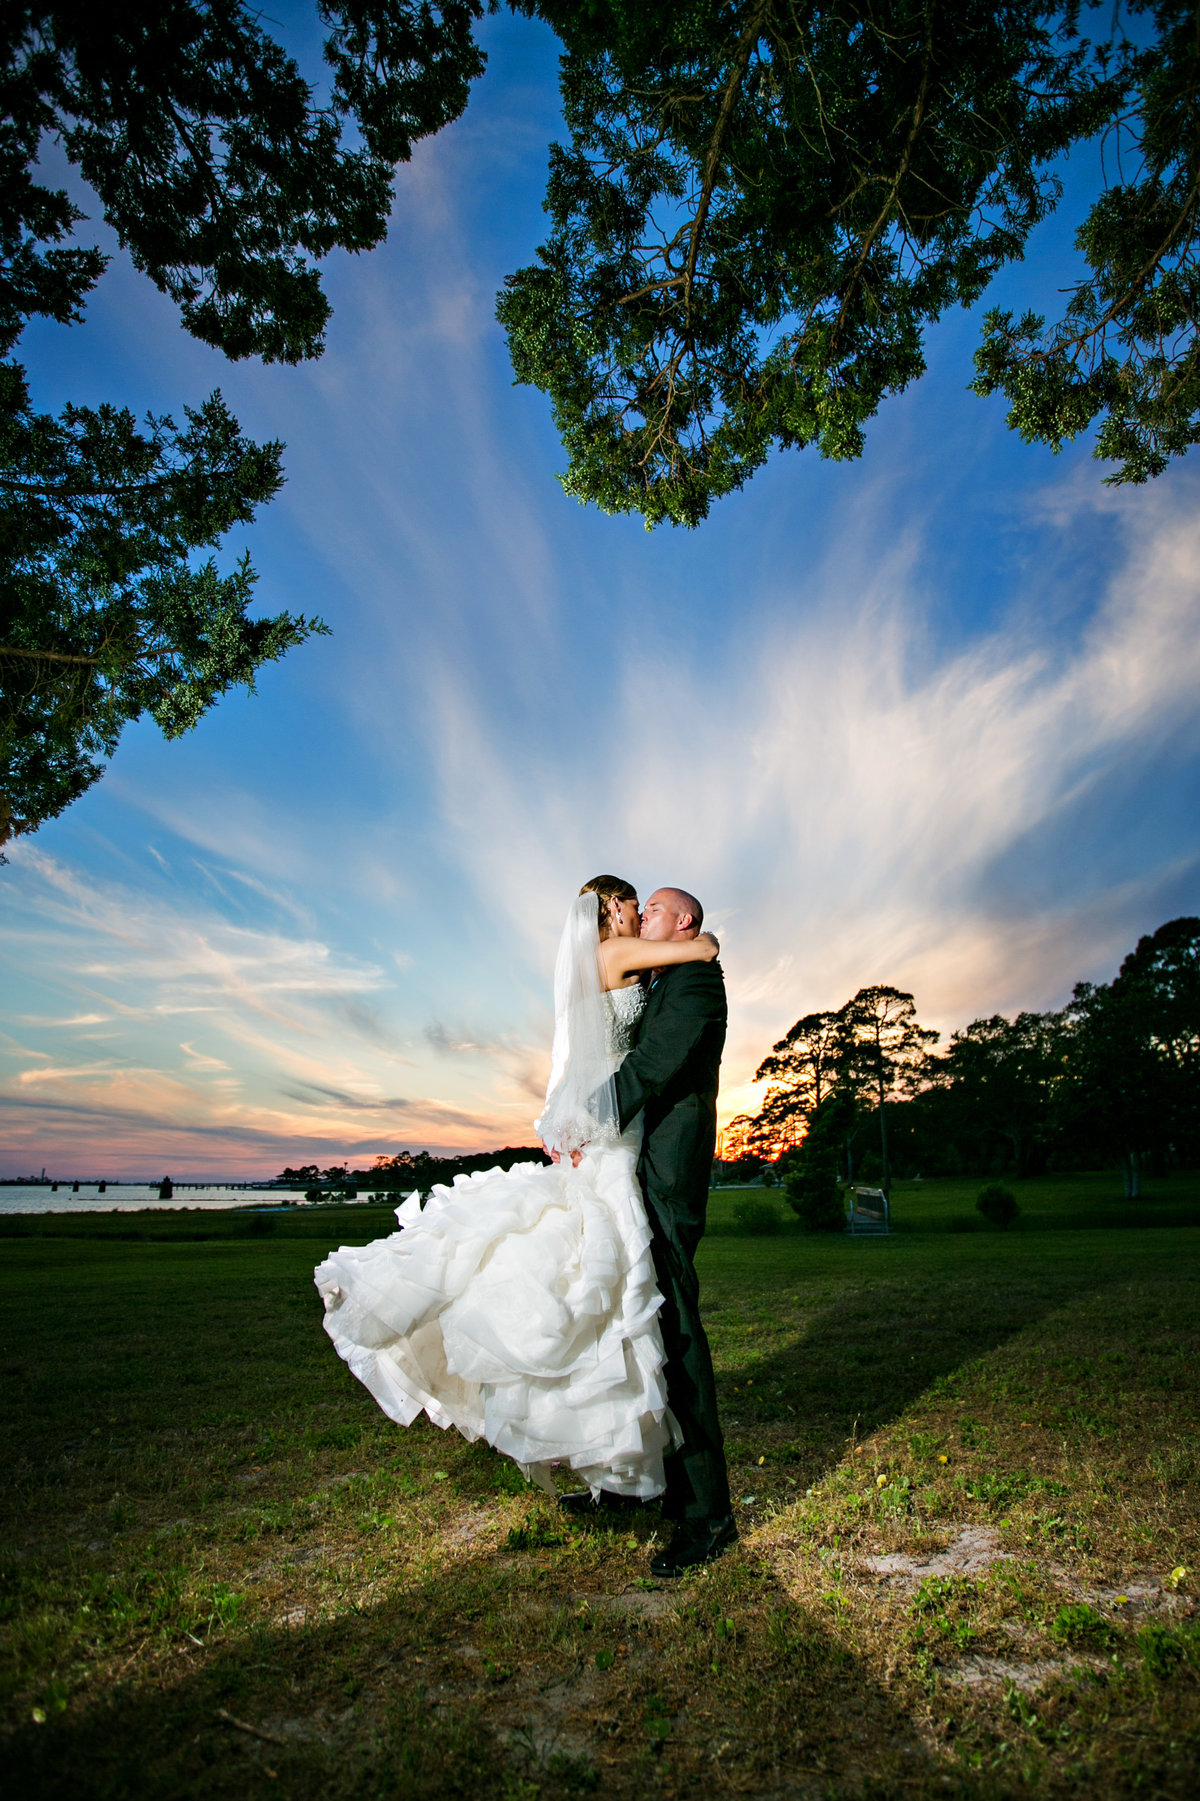 Destination Wedding Photographer in Florida Sunset